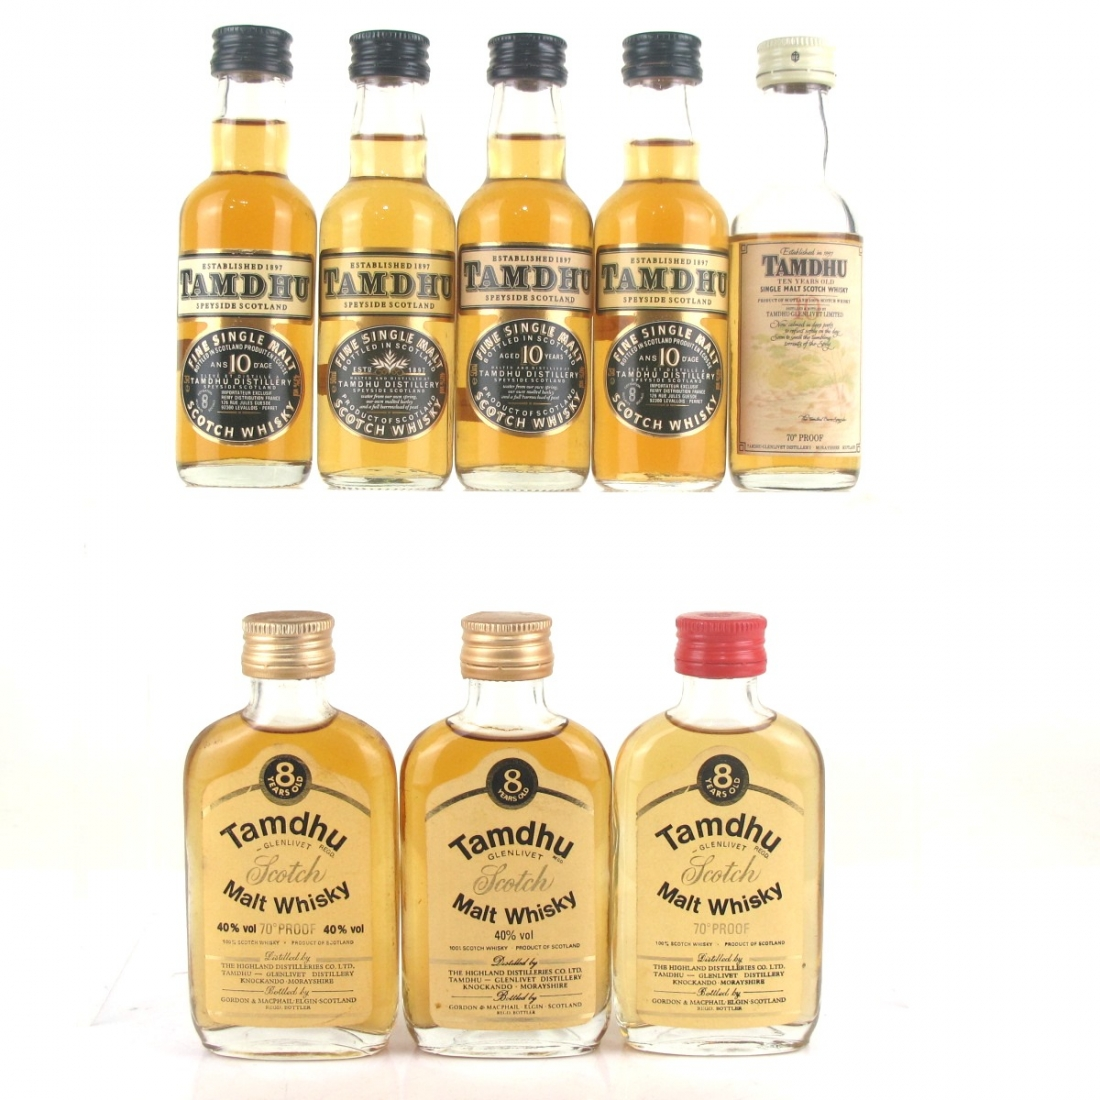 Tamdhu Miniature Collection 8 x 5cl